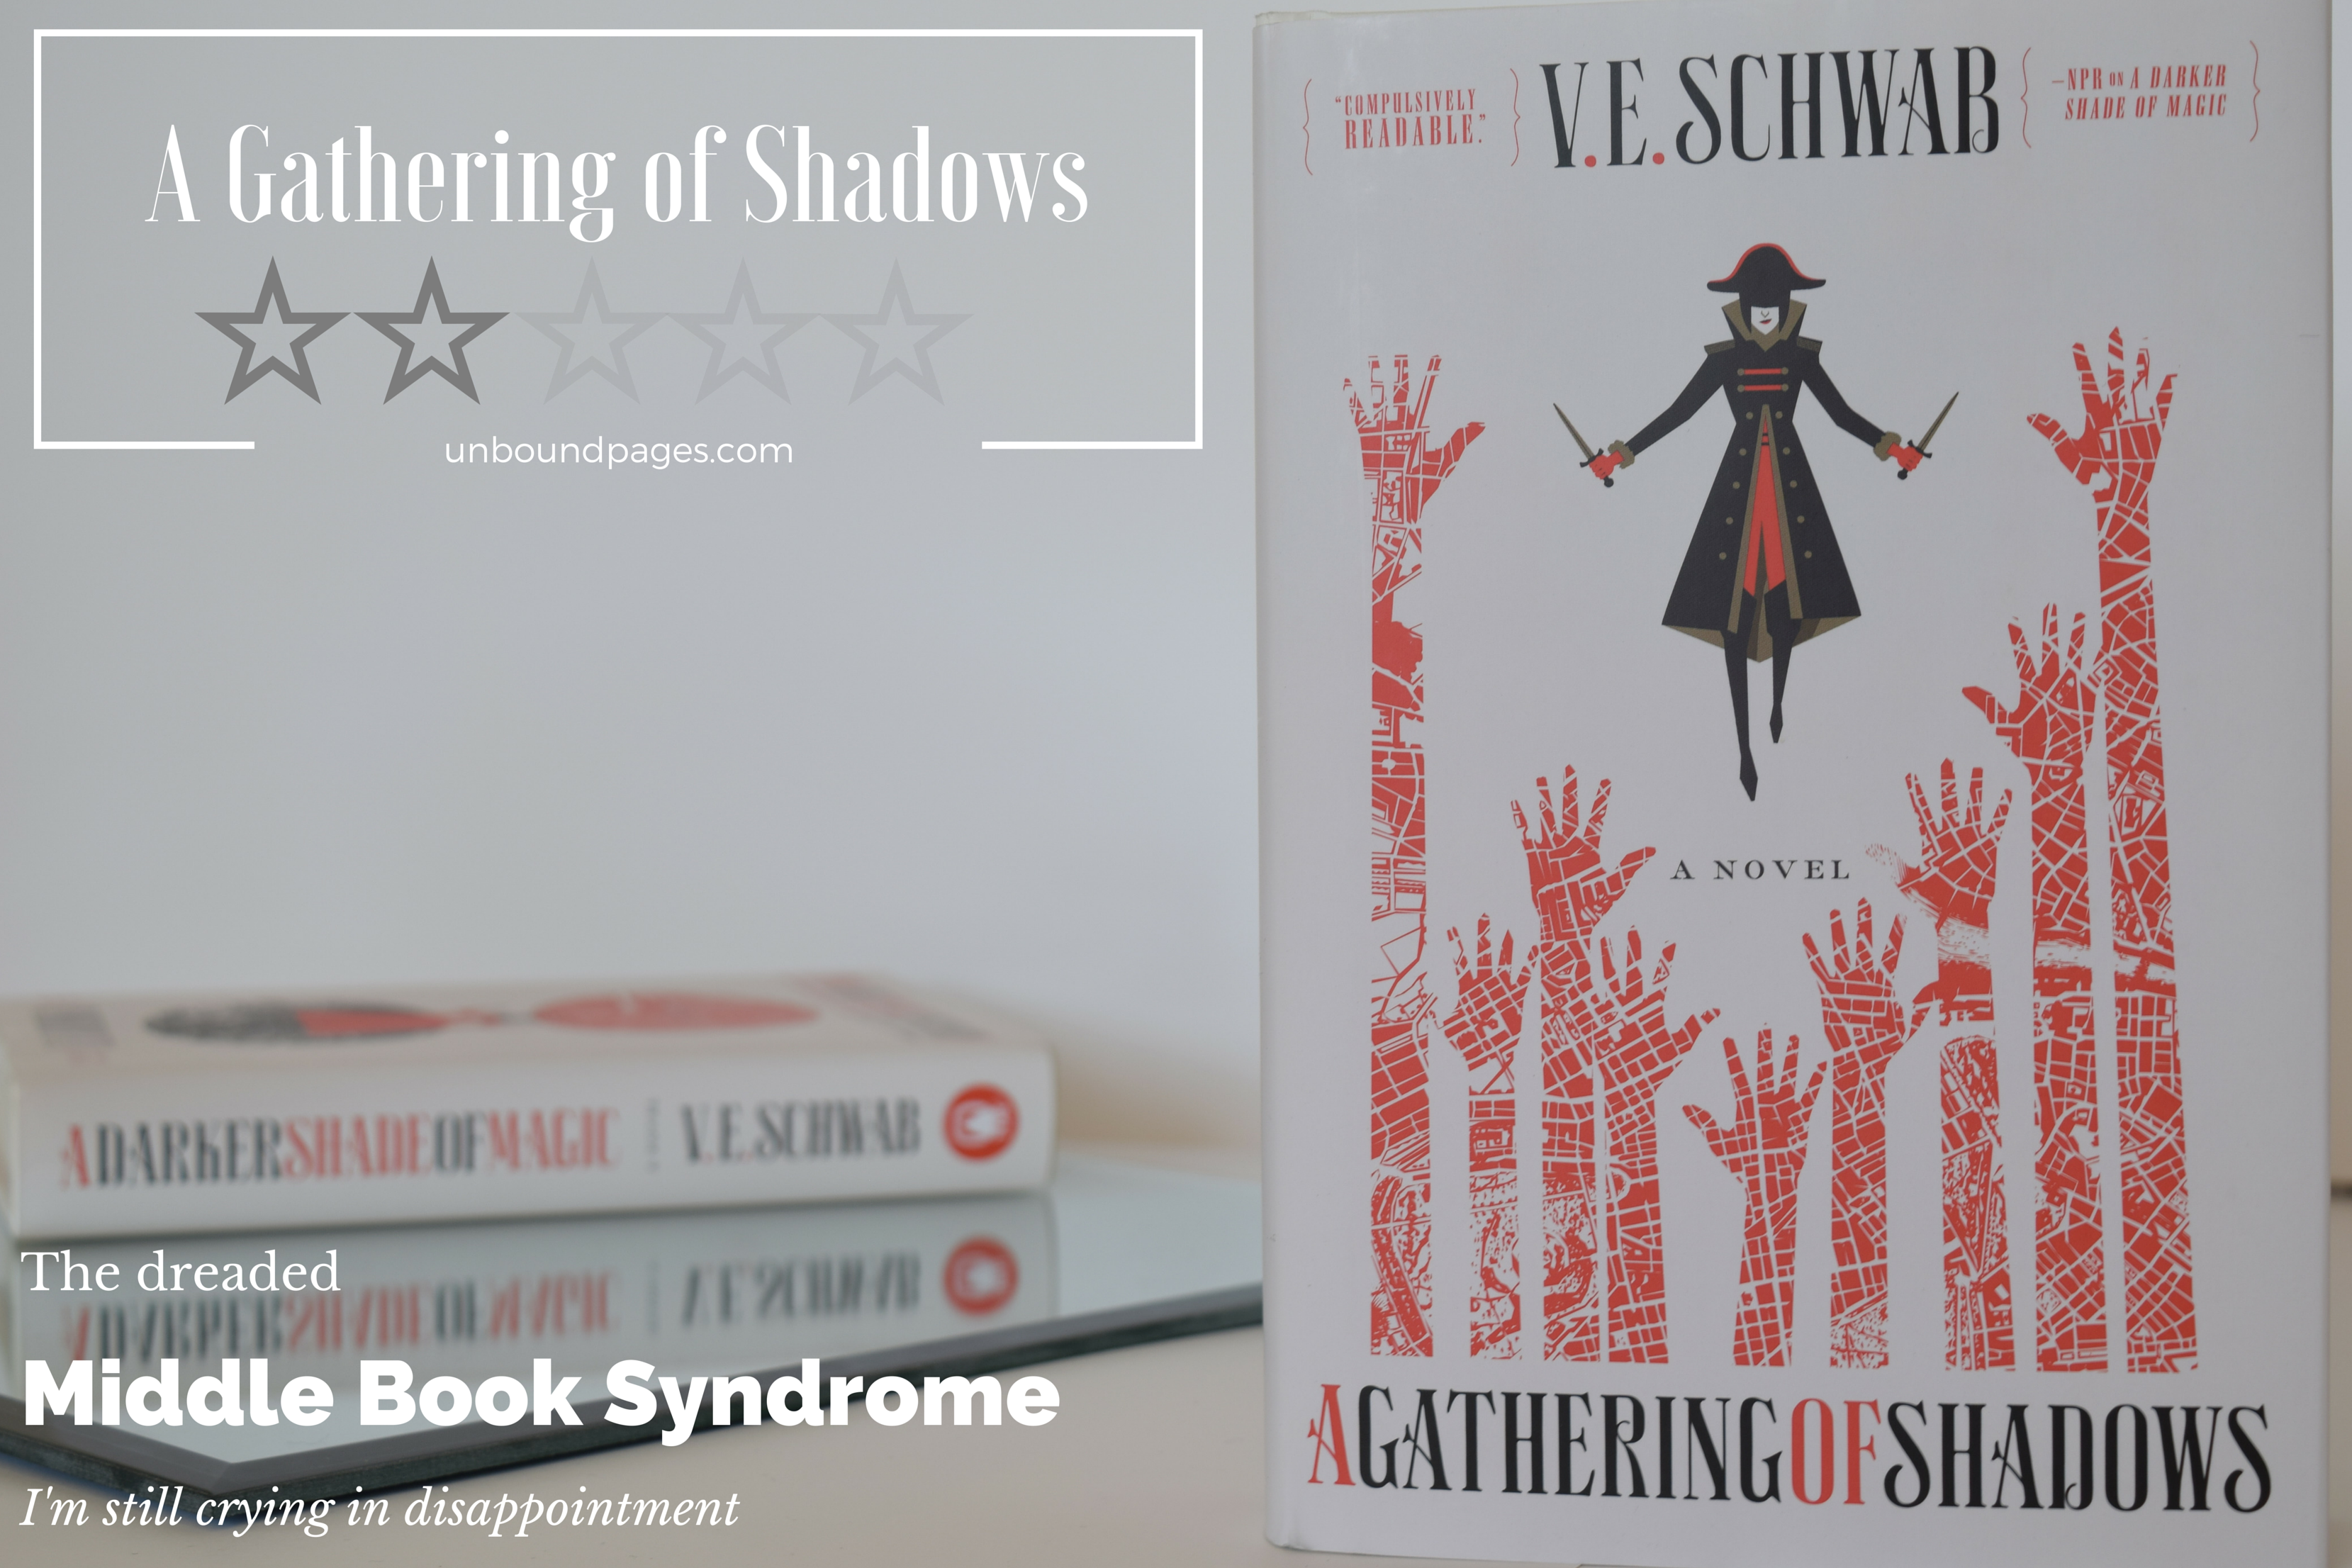 A Gathering of Shadows suffers from the dreaded middle book syndrome. A crushing disappointment after my love and passion for the first one, A Darker Shade of Magic - unboundpages.com